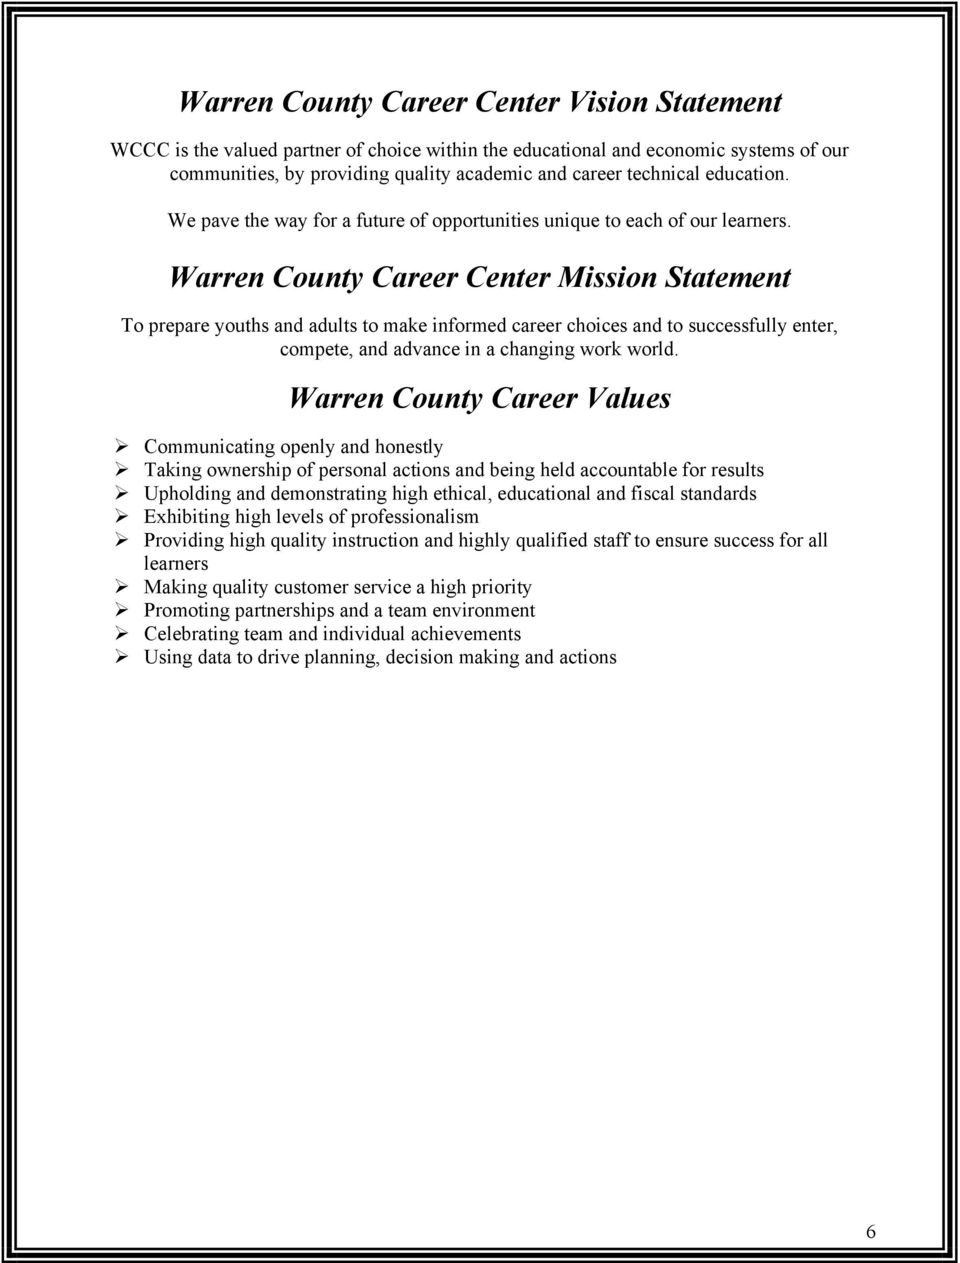 Warren County Career Center Mission Statement To prepare youths and adults to make informed career choices and to successfully enter, compete, and advance in a changing work world.